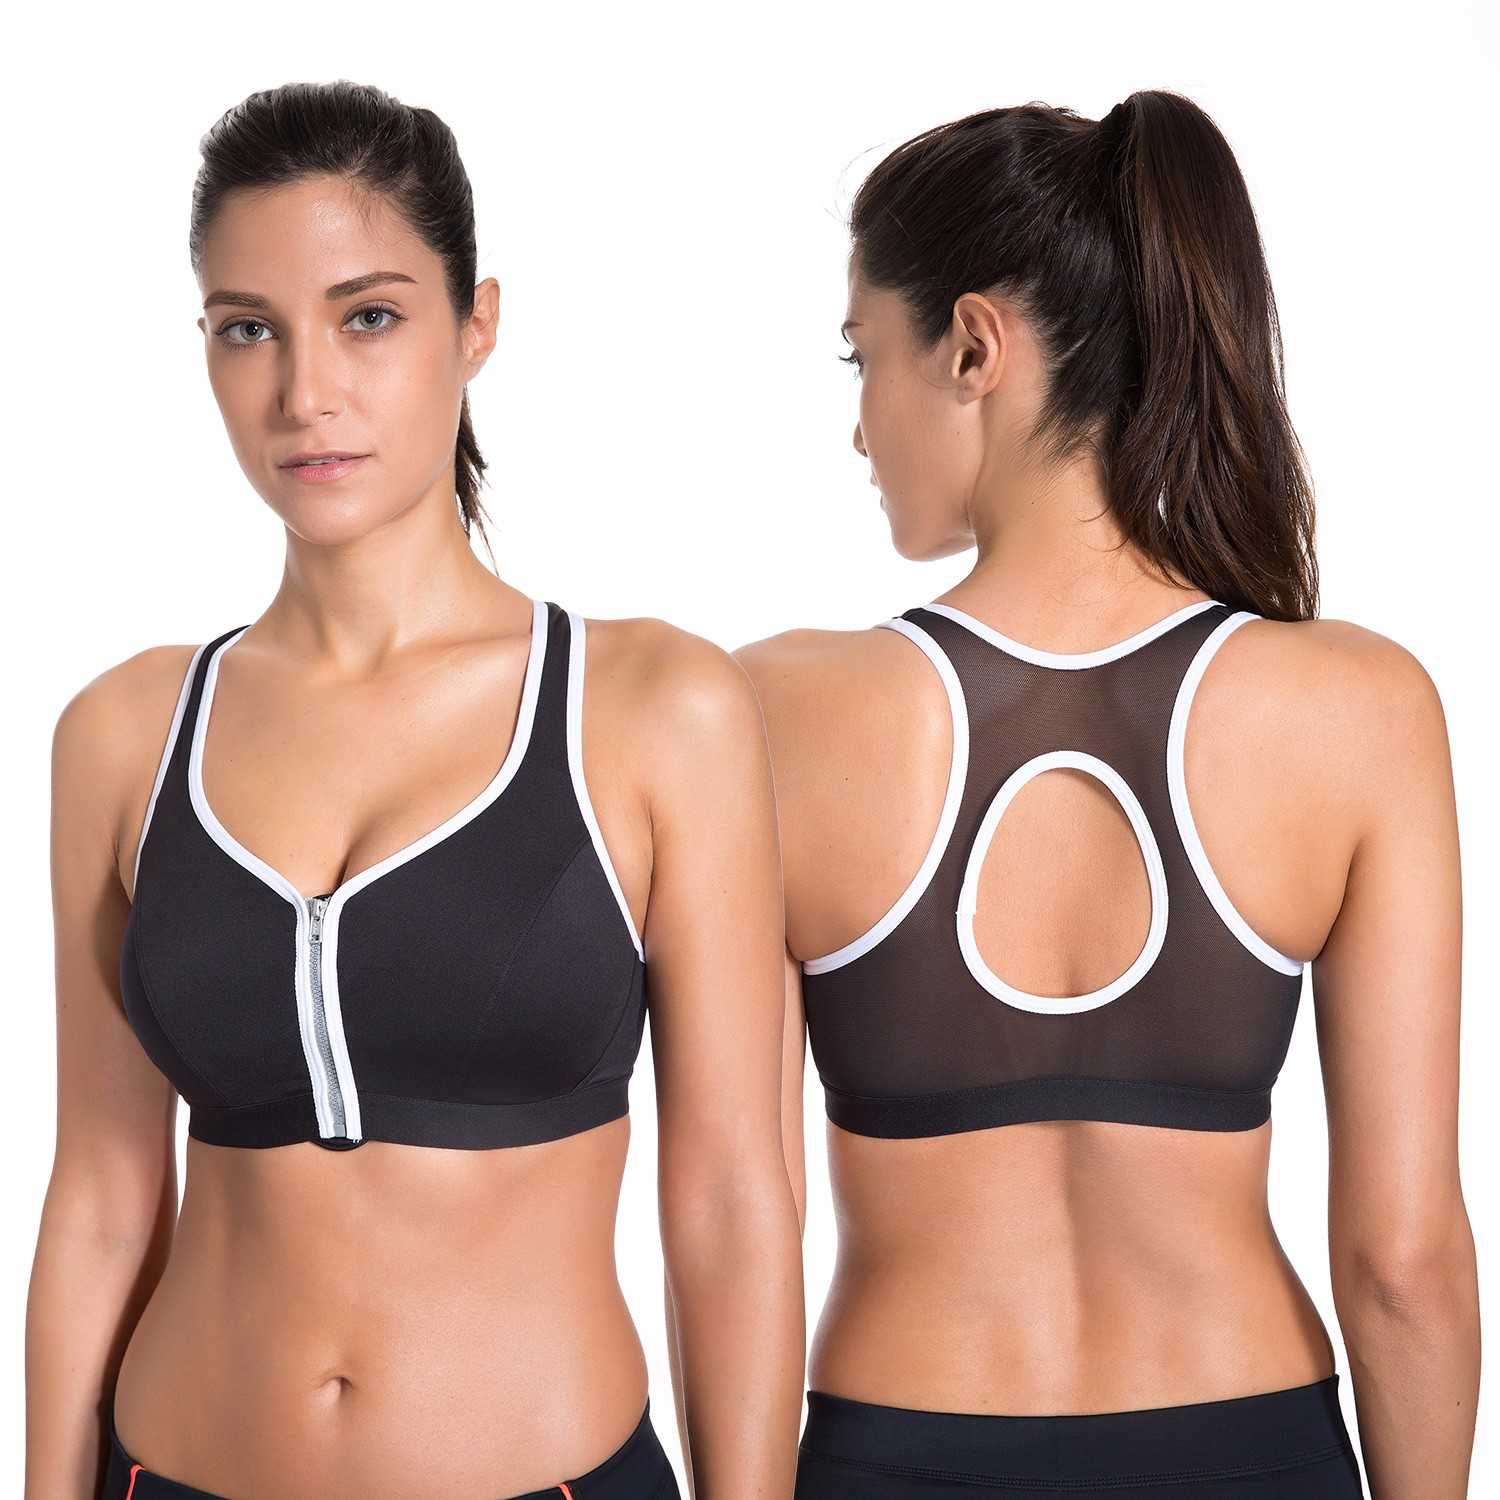 6167391dbce59 Women s High Impact Front Zipper Plunge Wire Free Non Padded Sports Bra